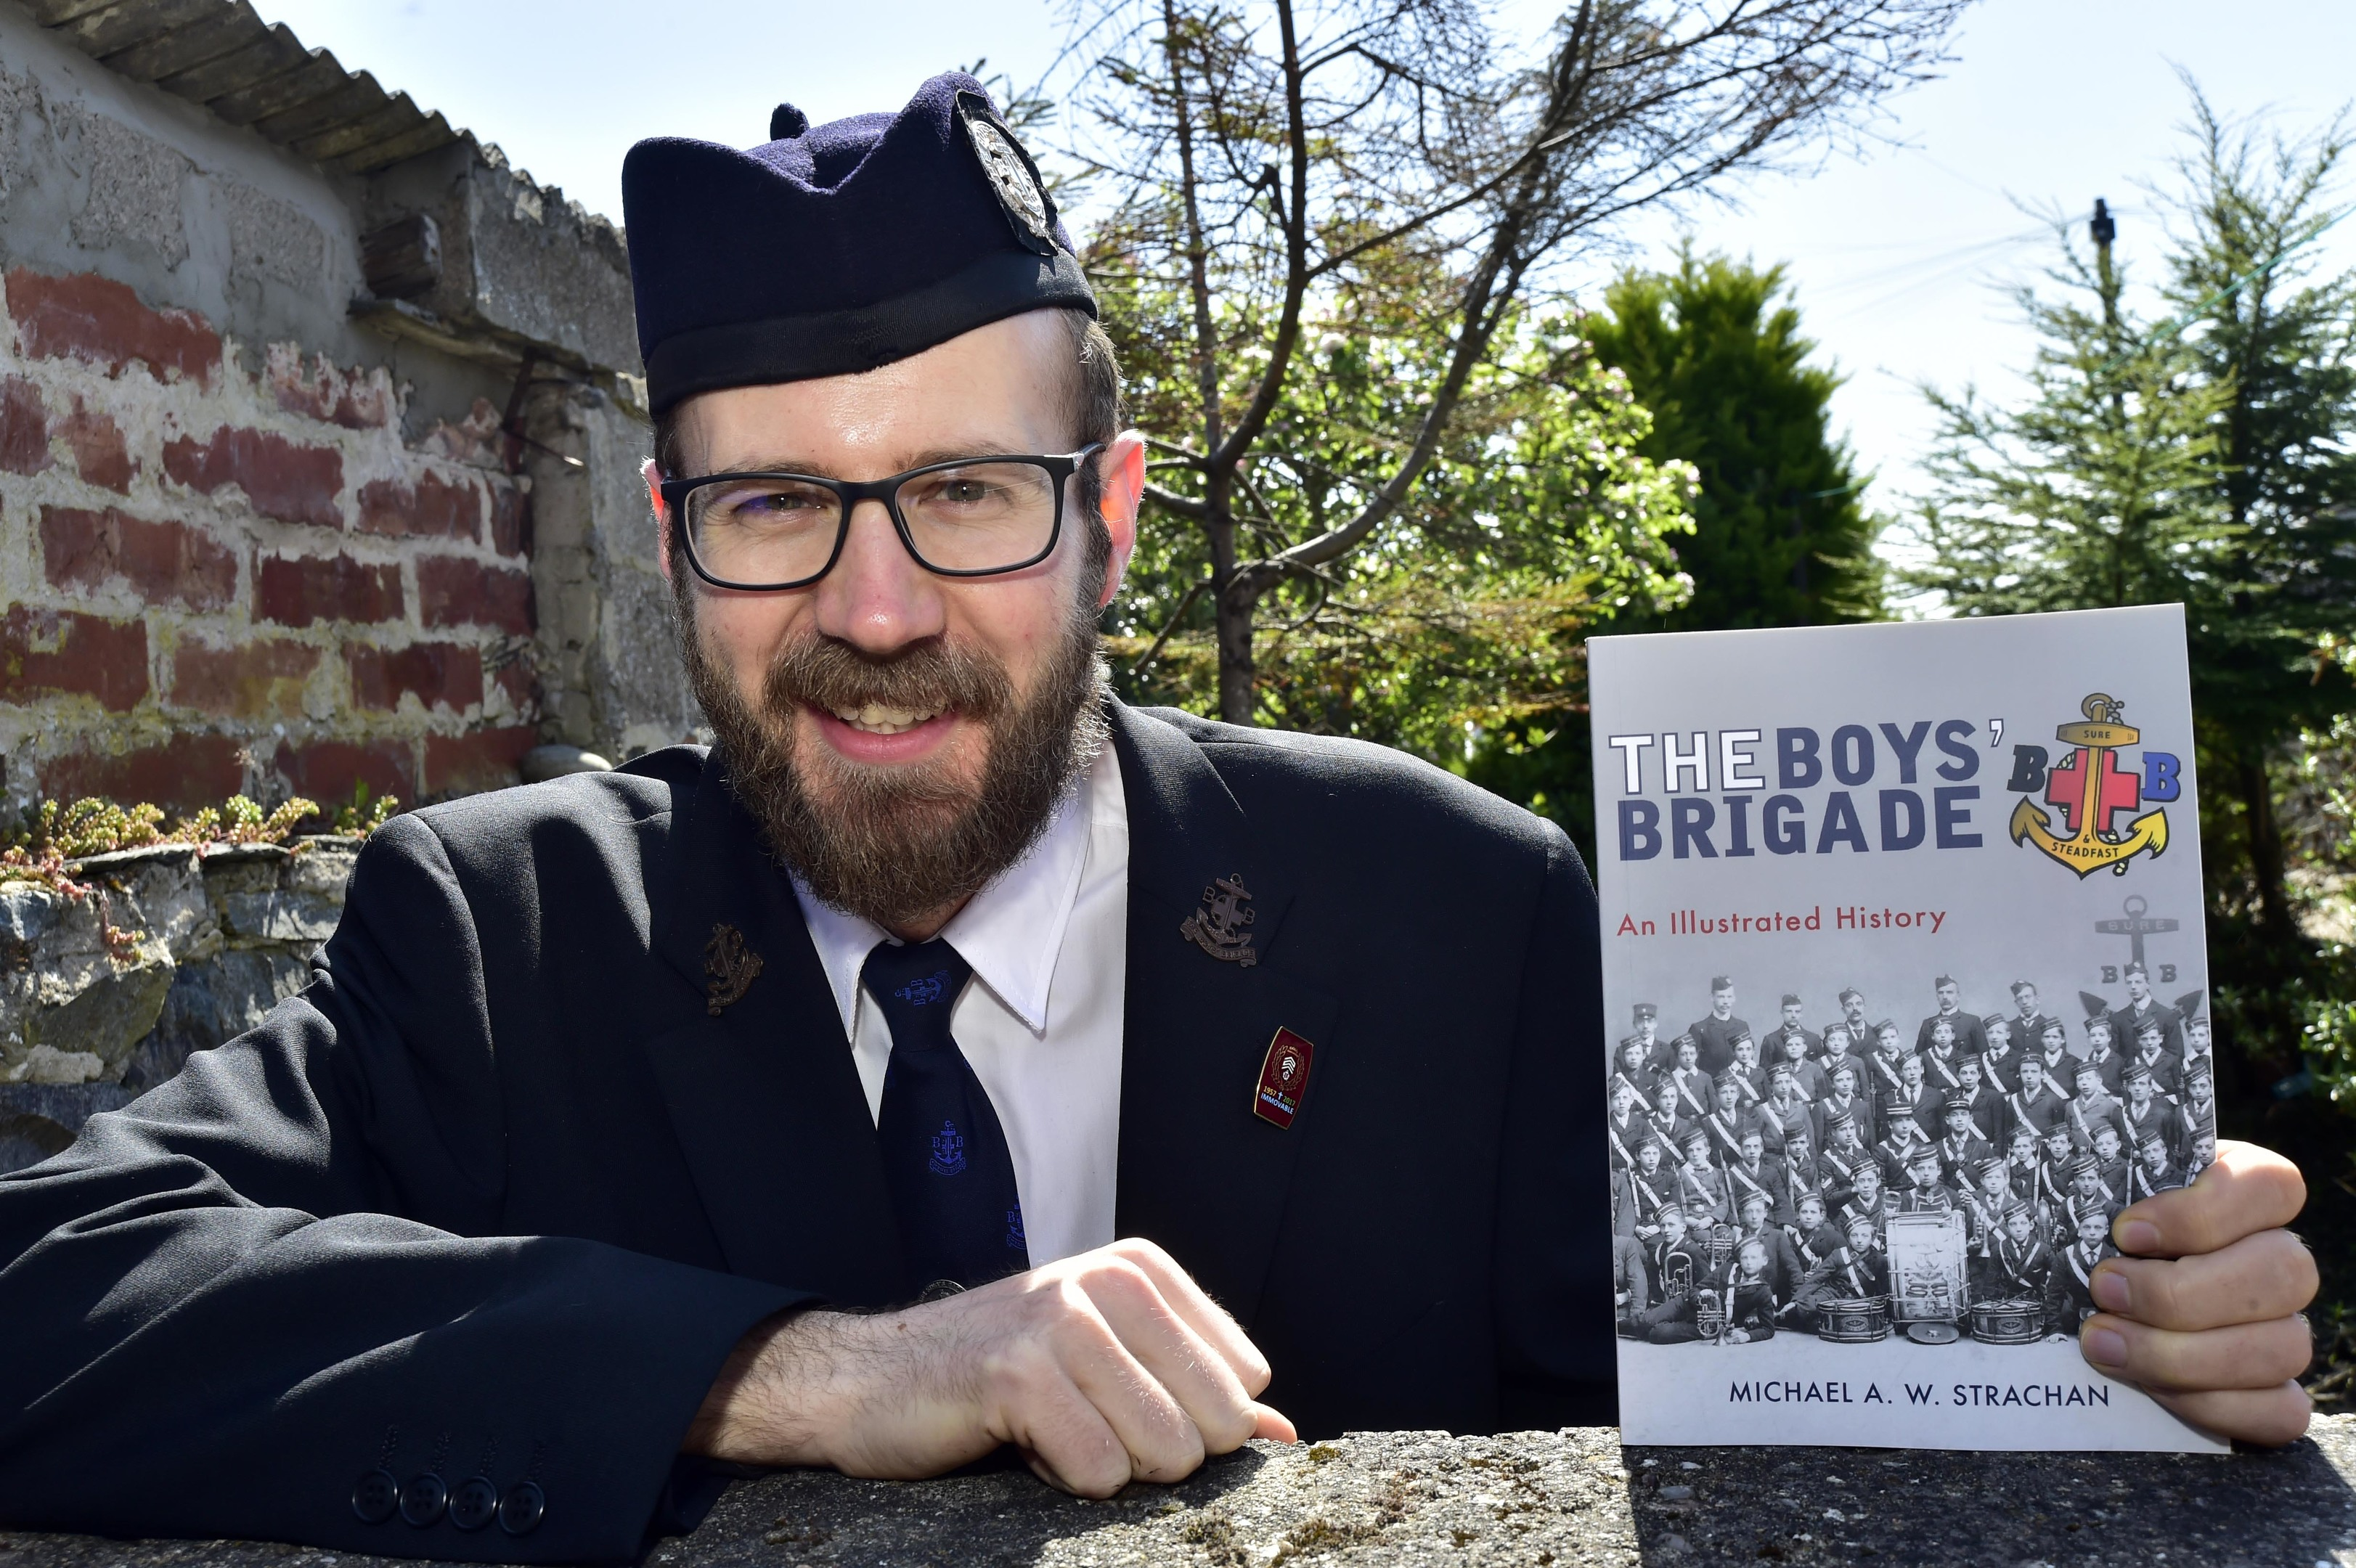 Michael Strachan with his illustrated history of the Boy's Brigade.